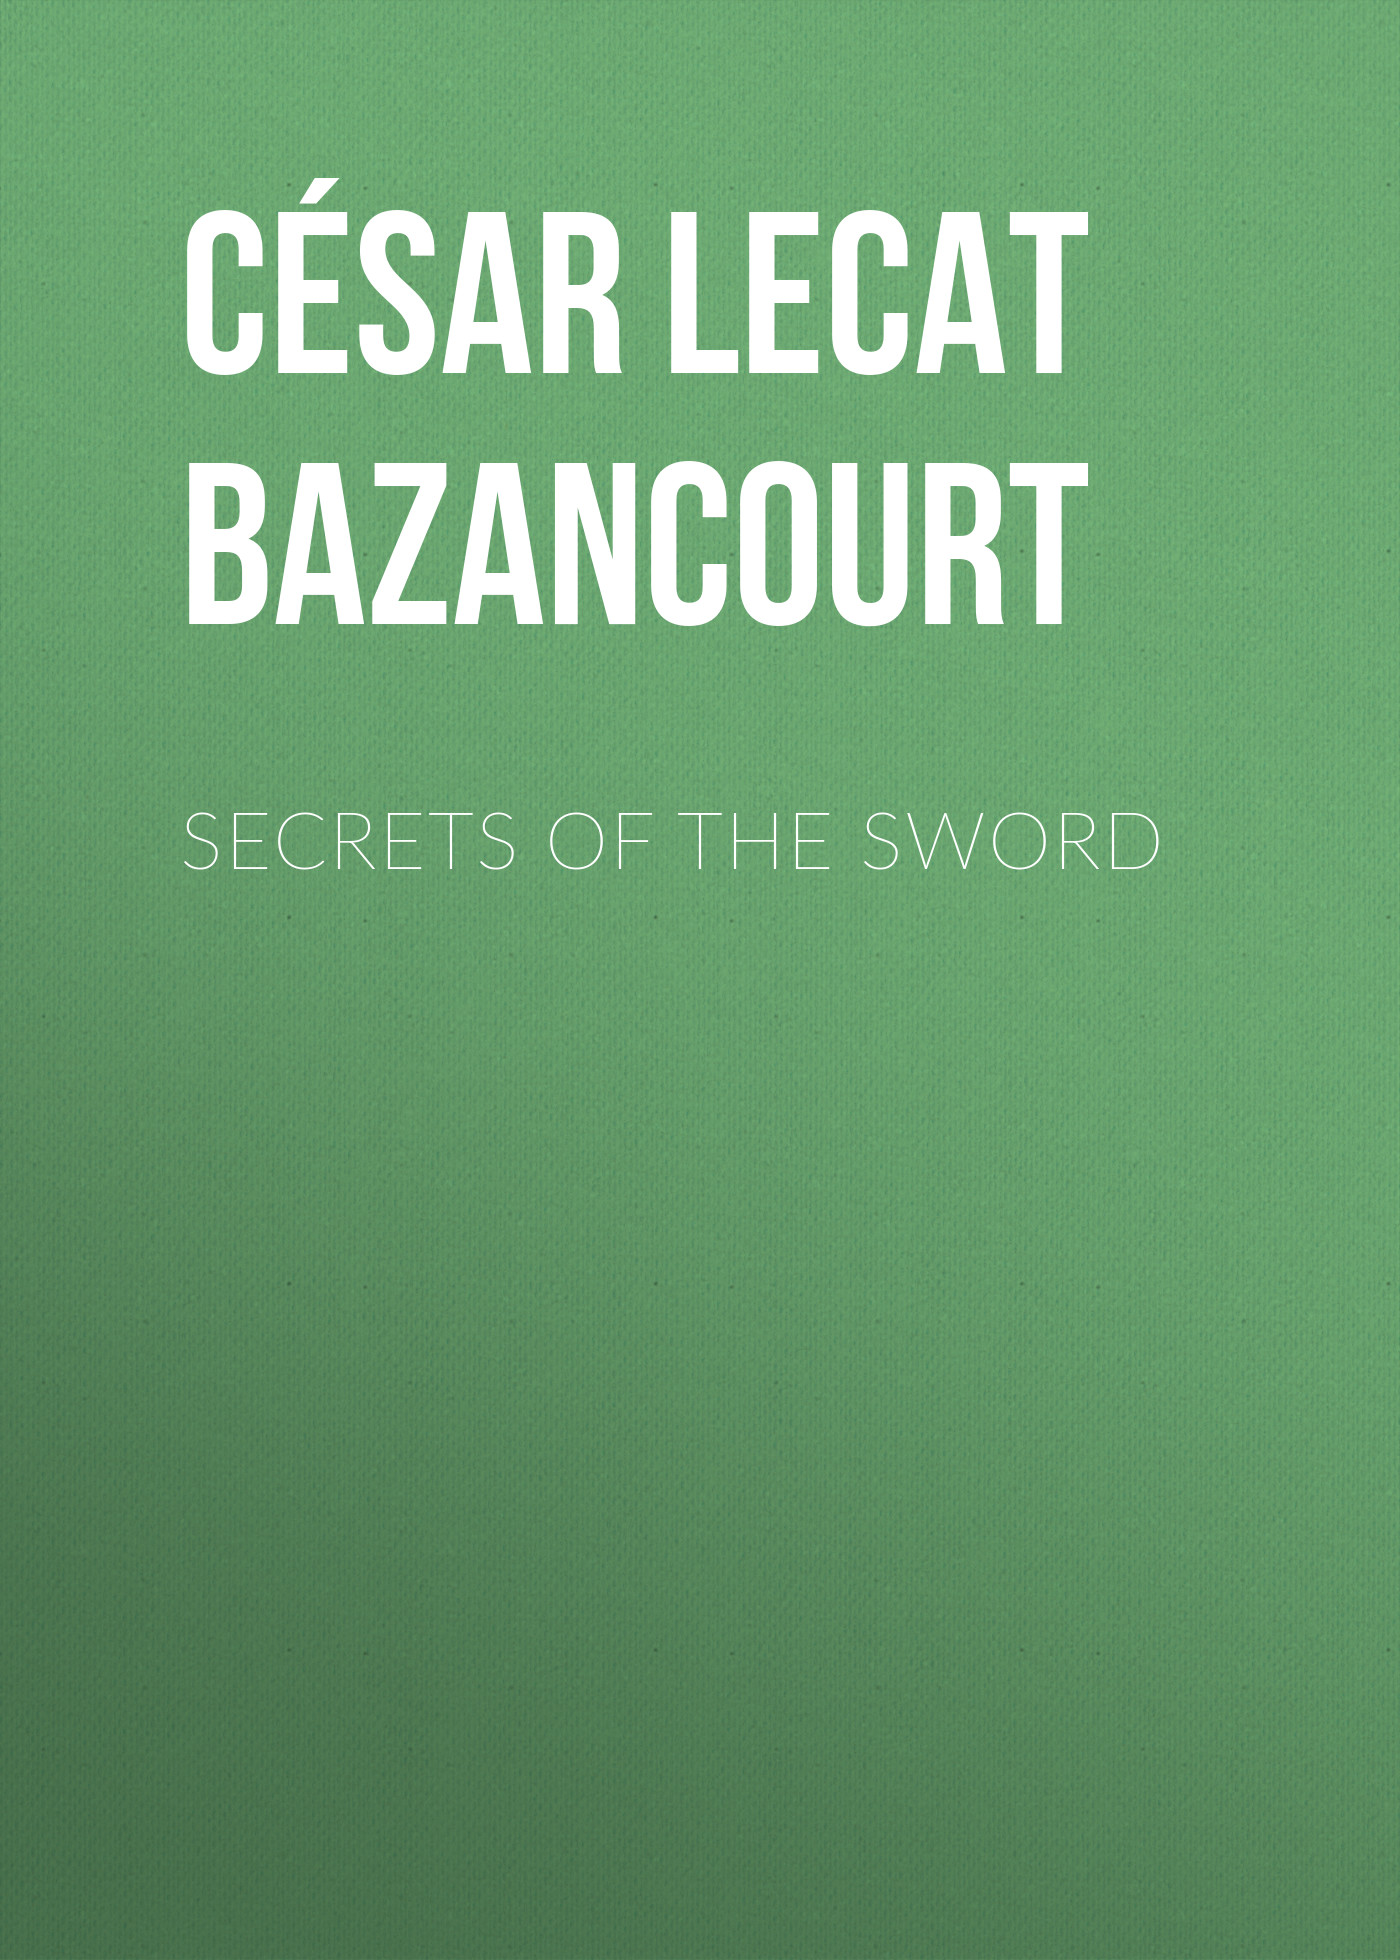 César Lecat de Bazancourt Secrets of the Sword secrets of the seas